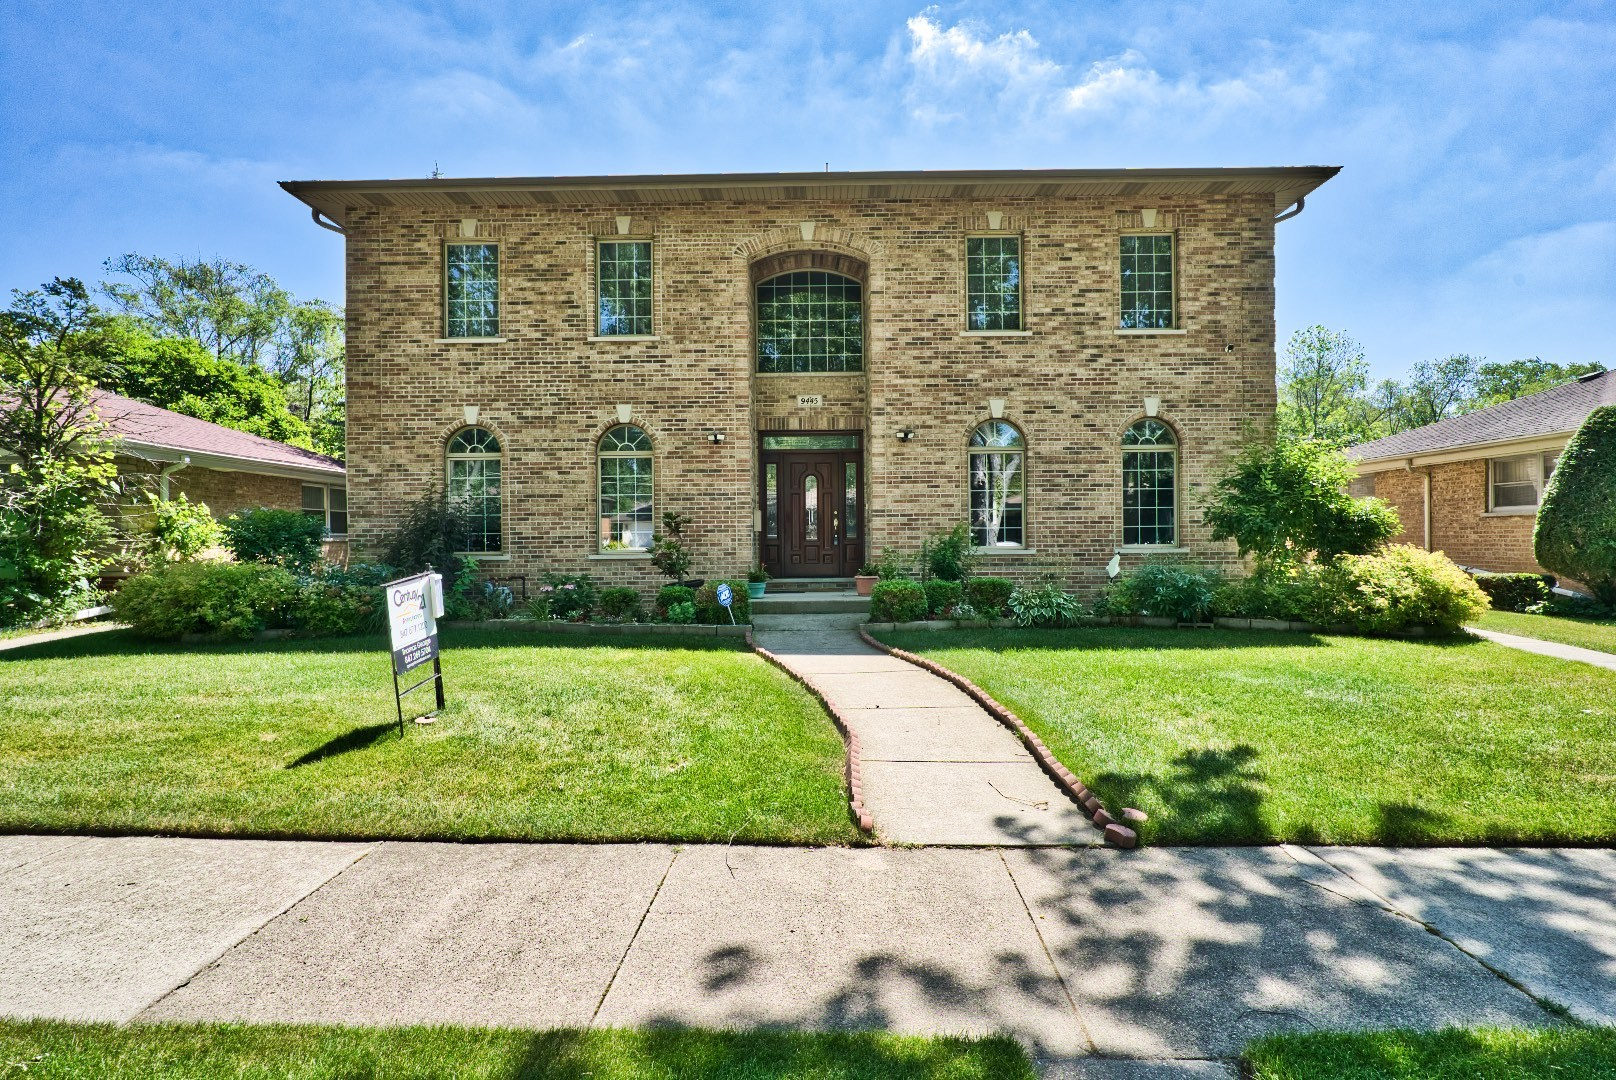 9445 Lowell Avenue, one of homes for sale in Skokie